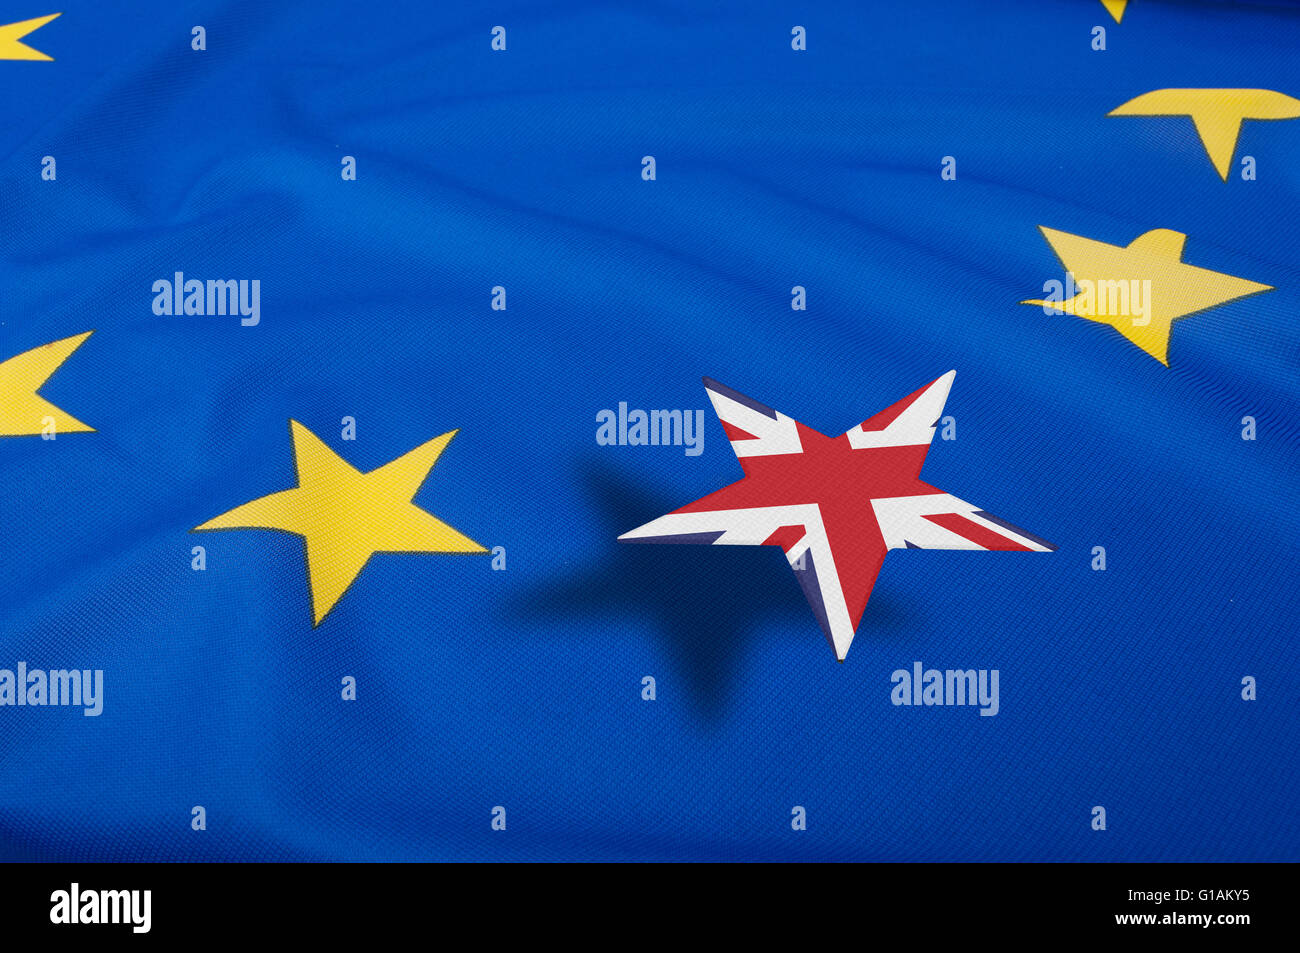 Brexit - European Union Flag Drapery With Great Britain Leaving - Stock Image